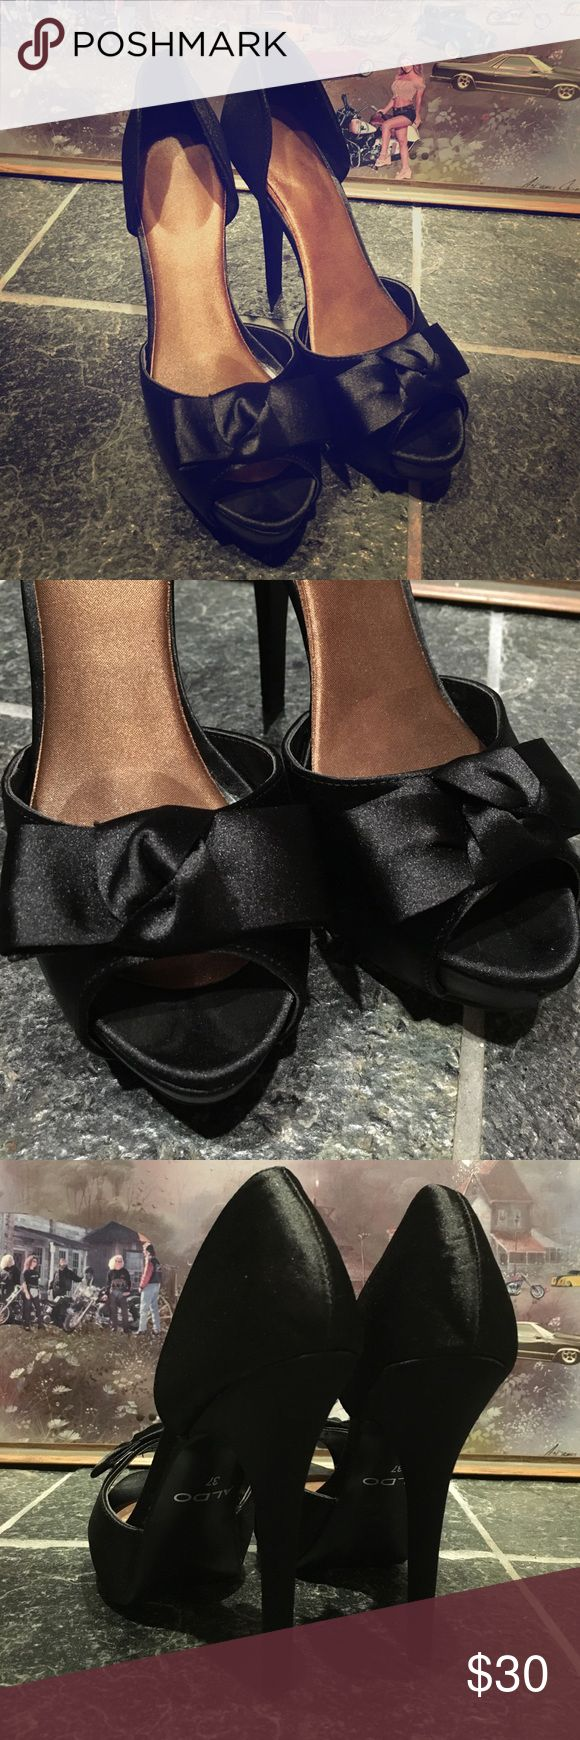 Aldo lil black dress warriors Would go KILLER with your perfect LBD Aldo Shoes Heels